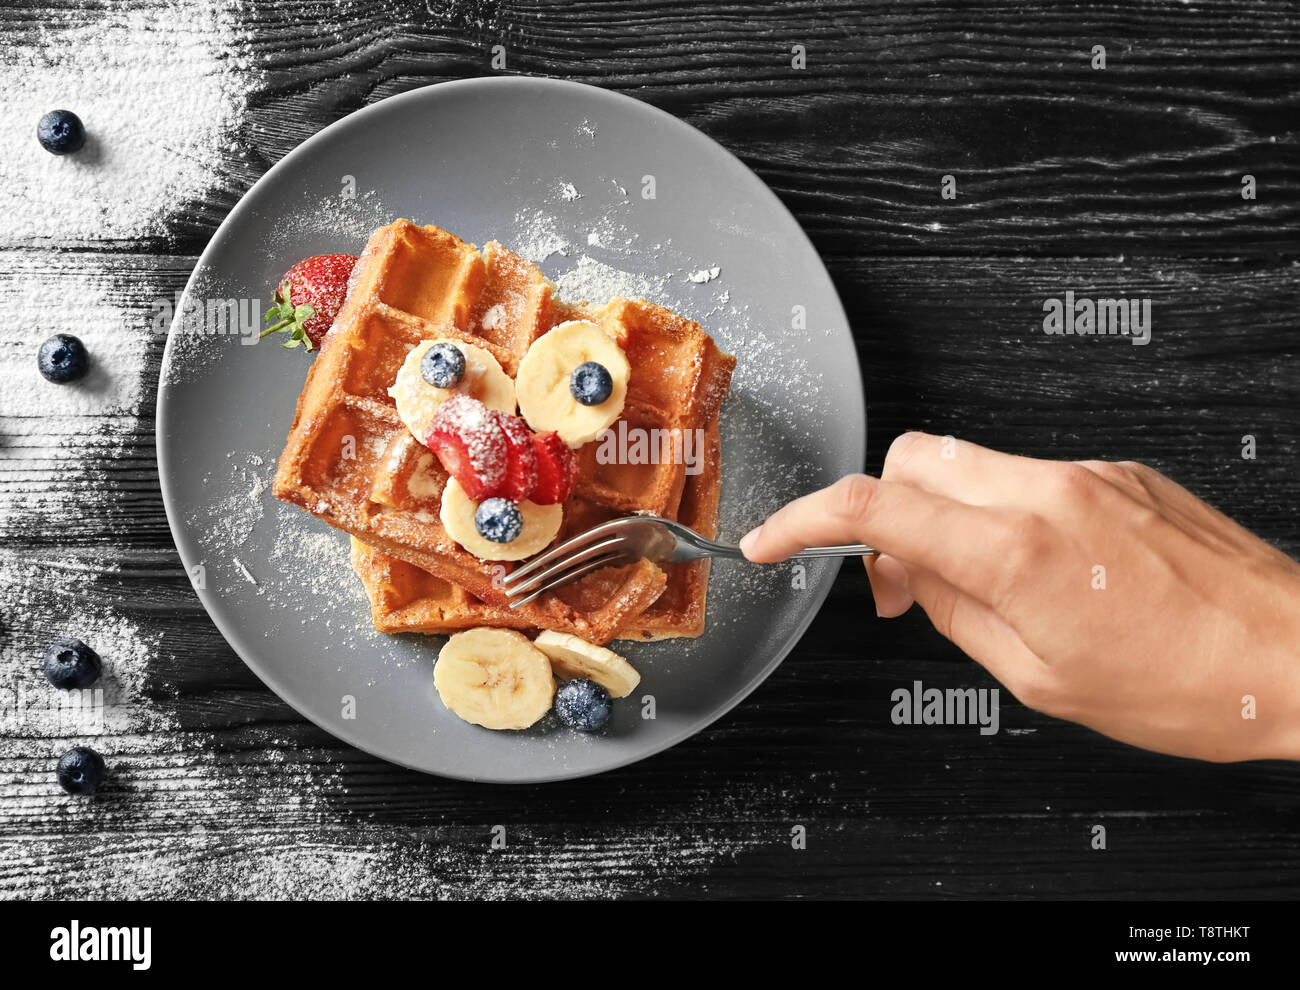 Woman eating delicious waffles and berries on wooden background - Stock Image